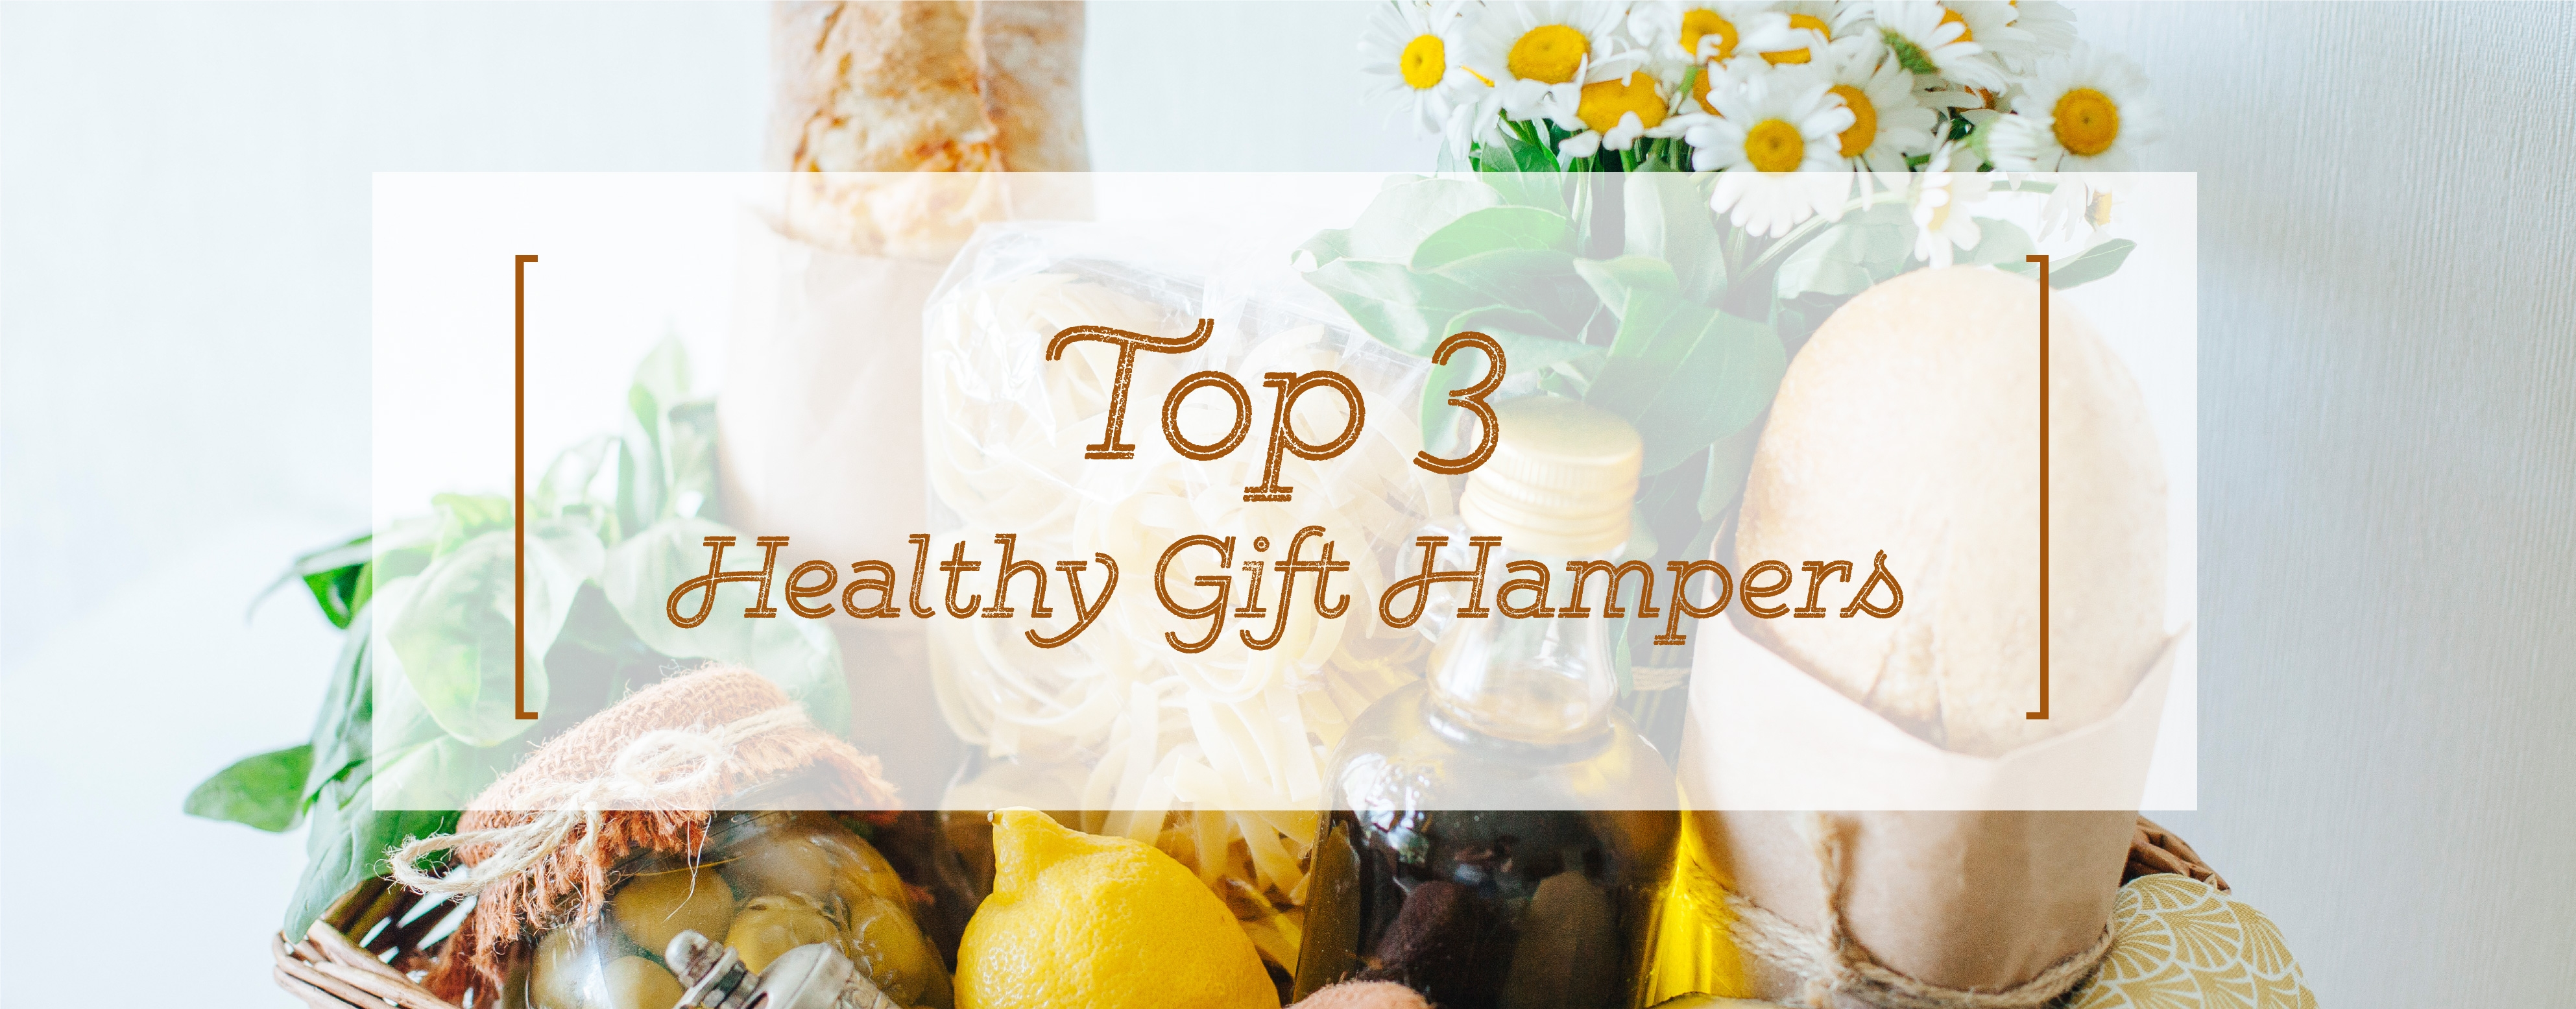 HHealthy Gift Hampers Ideas